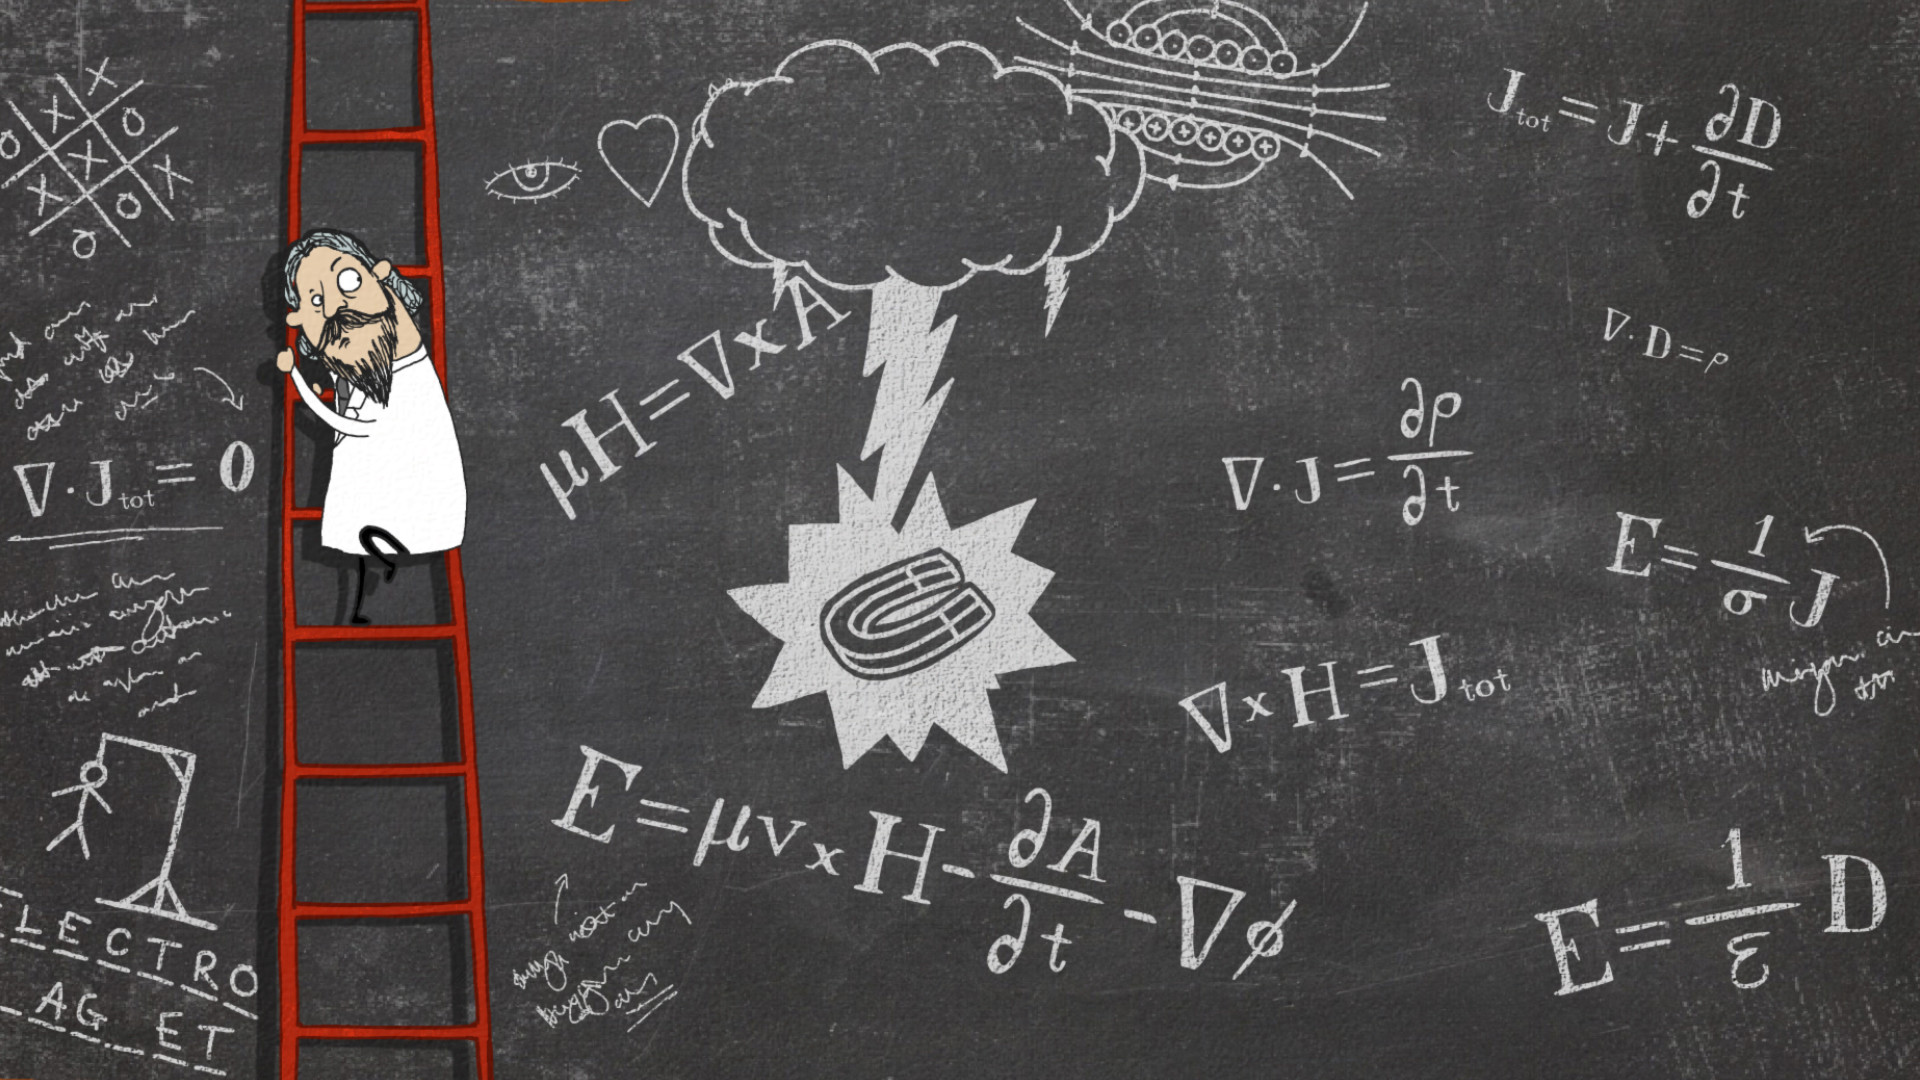 Scientist Math Psychics Magnet science HD wallpaper background.